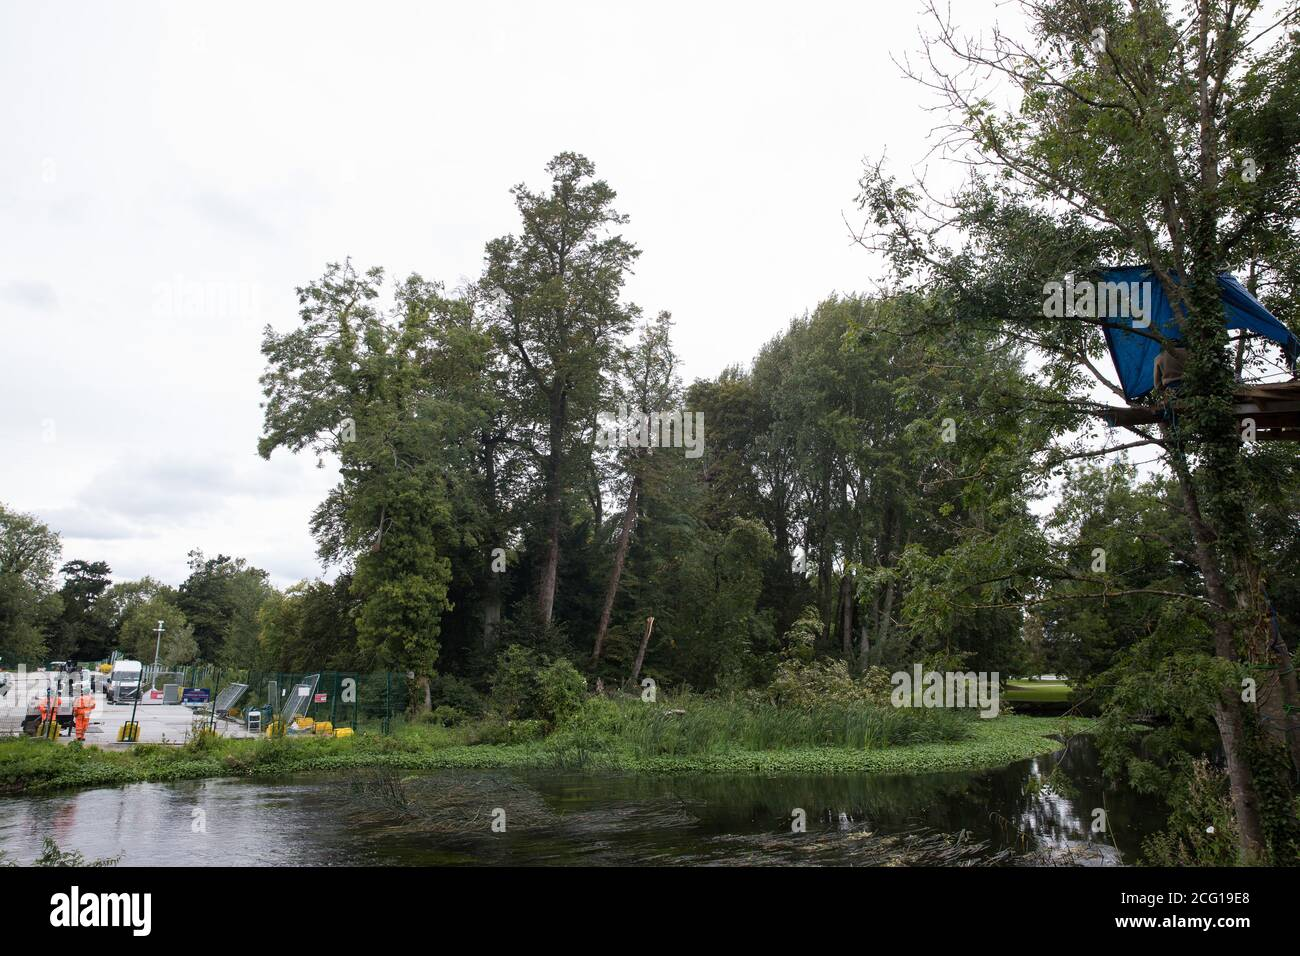 Denham, UK. 7th September, 2020. A view towards a site where a large tree suddenly fell to the ground adjacent to a construction site for the HS2 high-speed rail link at Denham Ford. Credit: Mark Kerrison/Alamy Live News Stock Photo